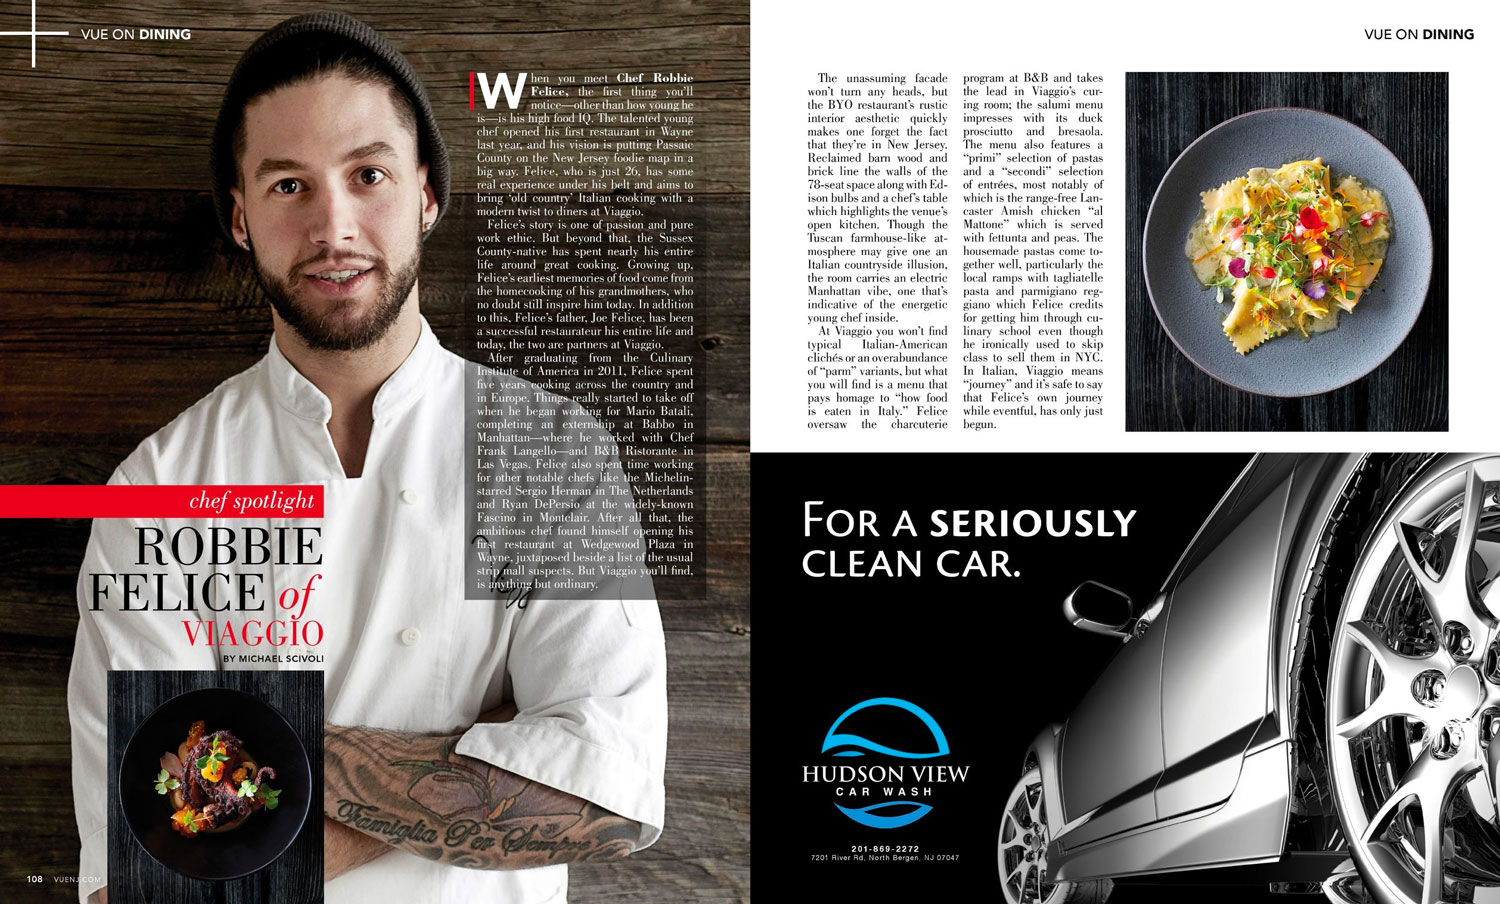 Robby-Felice-Featured-in-Vue-Mag